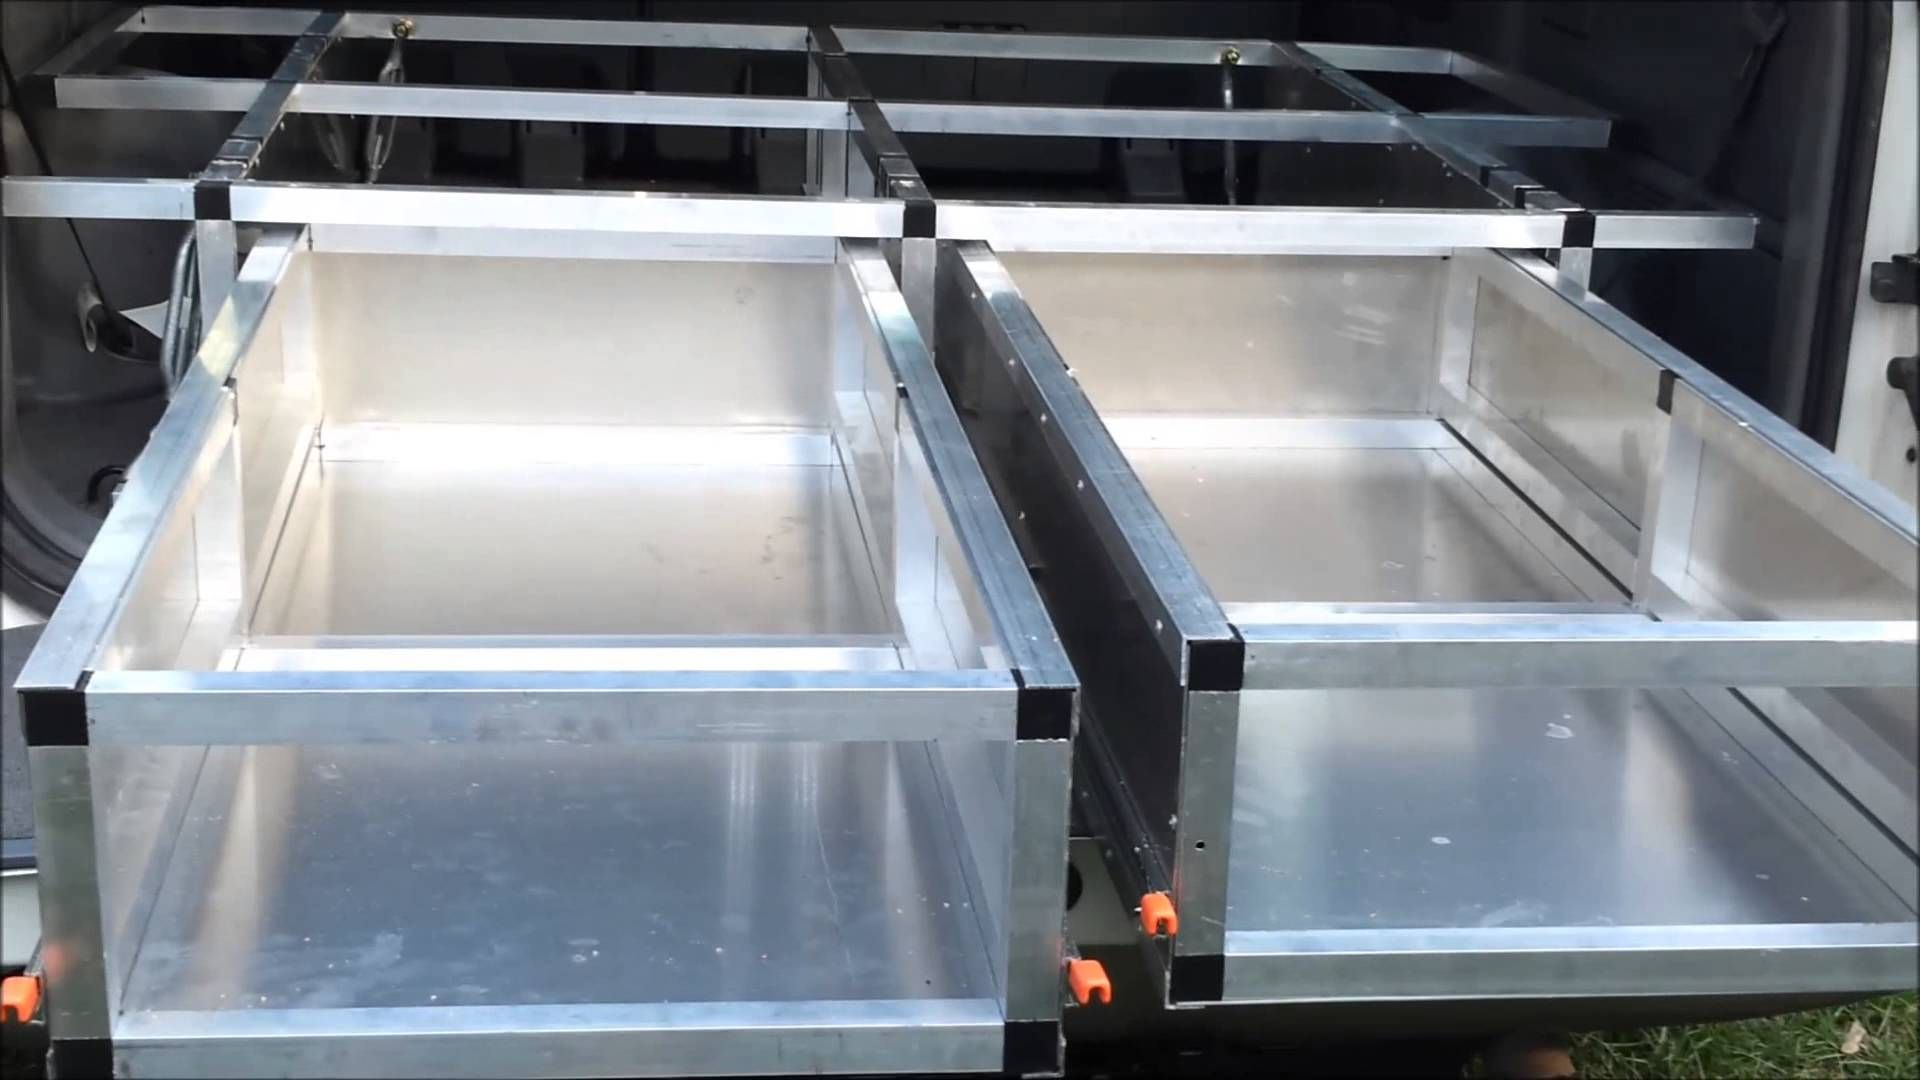 Pin By Chrisna Snyman On Trailer Truck Bed Storage